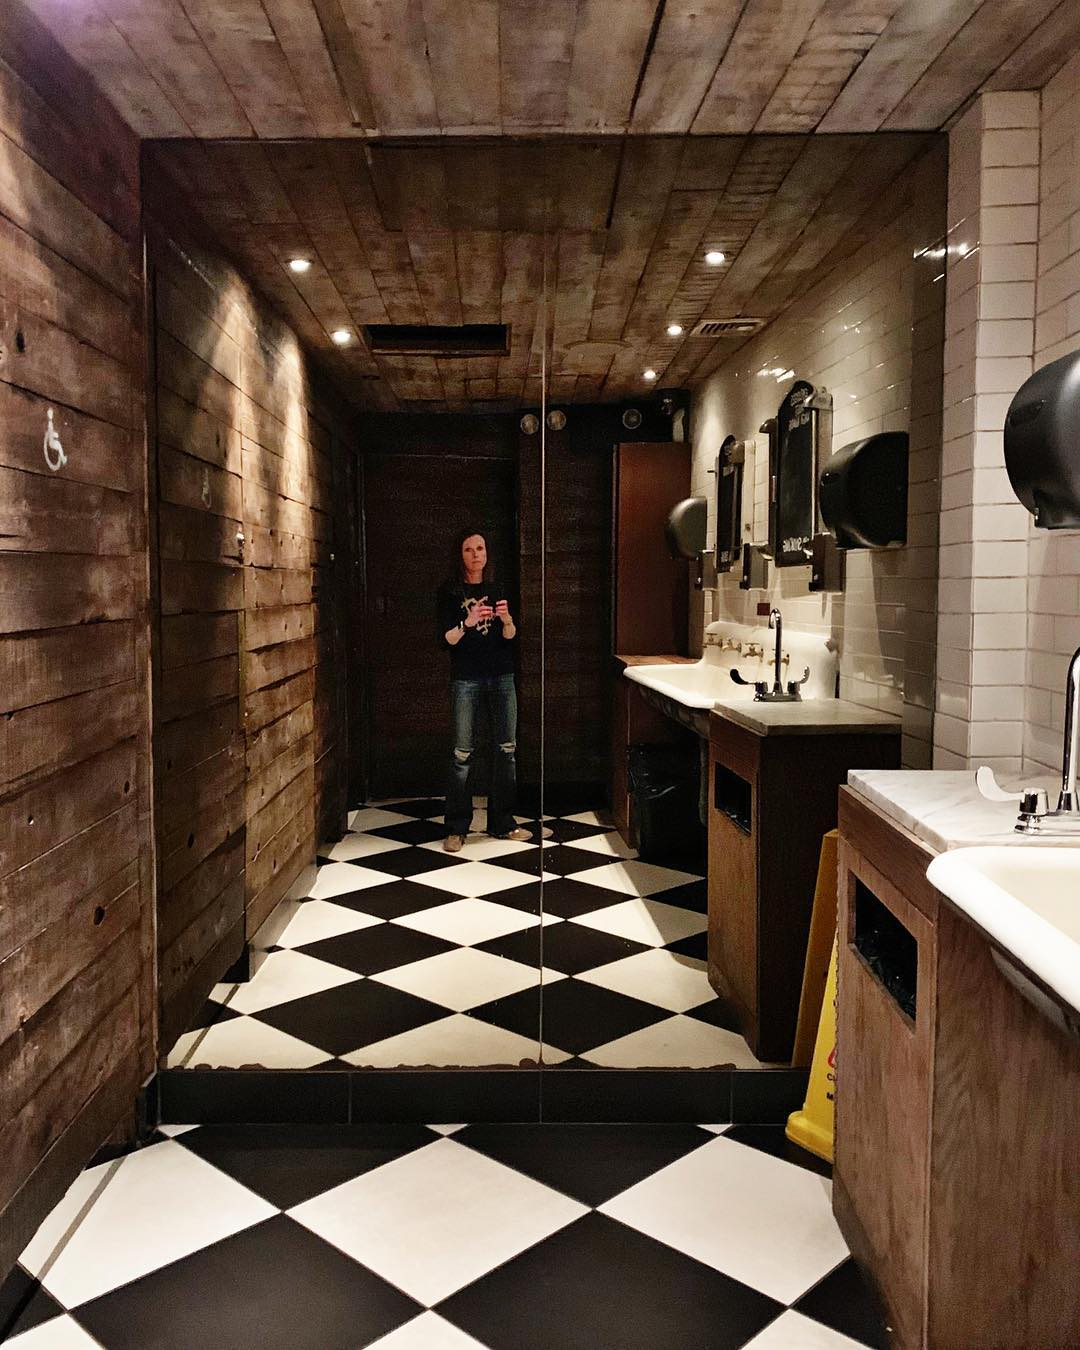 You know you are from Montana when you are excited enough to take a photograph of a NYC bathroom! whitefish custom home builder